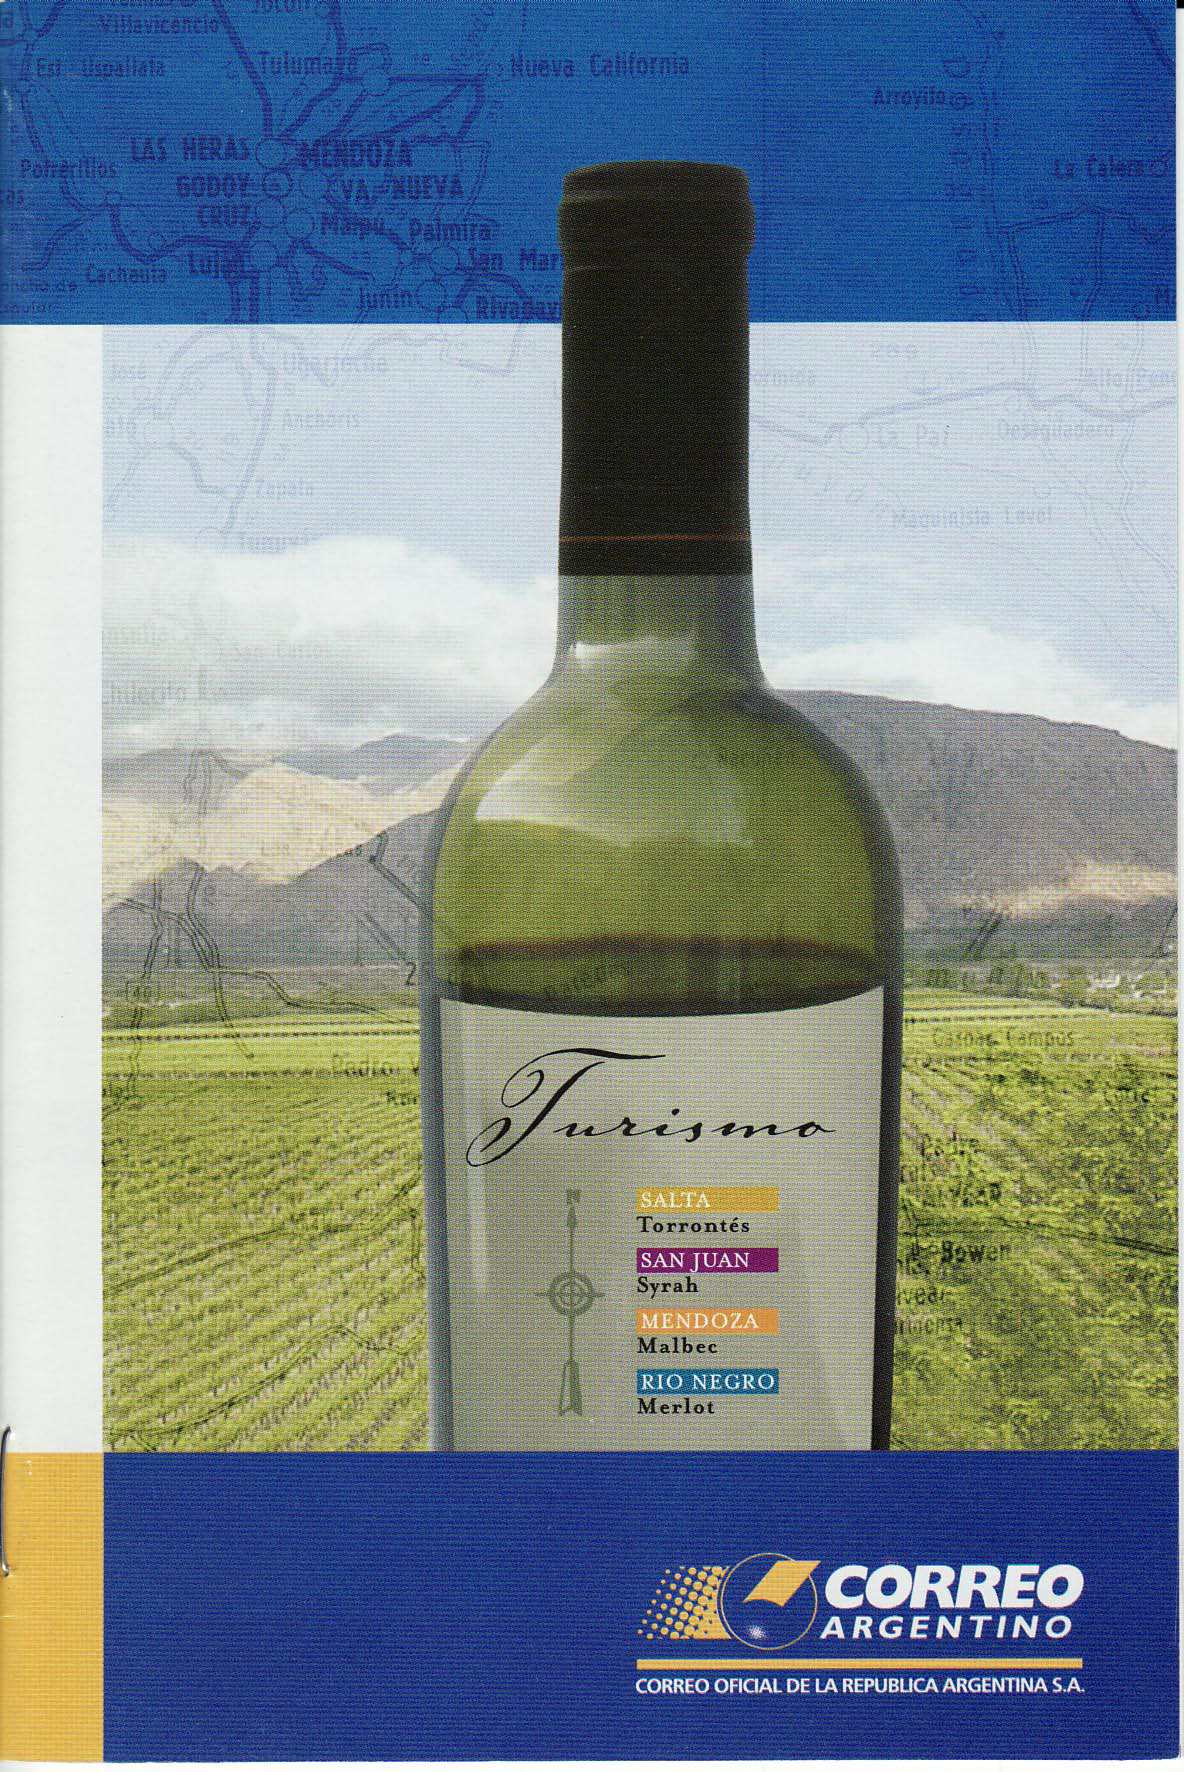 Argentna Wine stamp booklet from post office